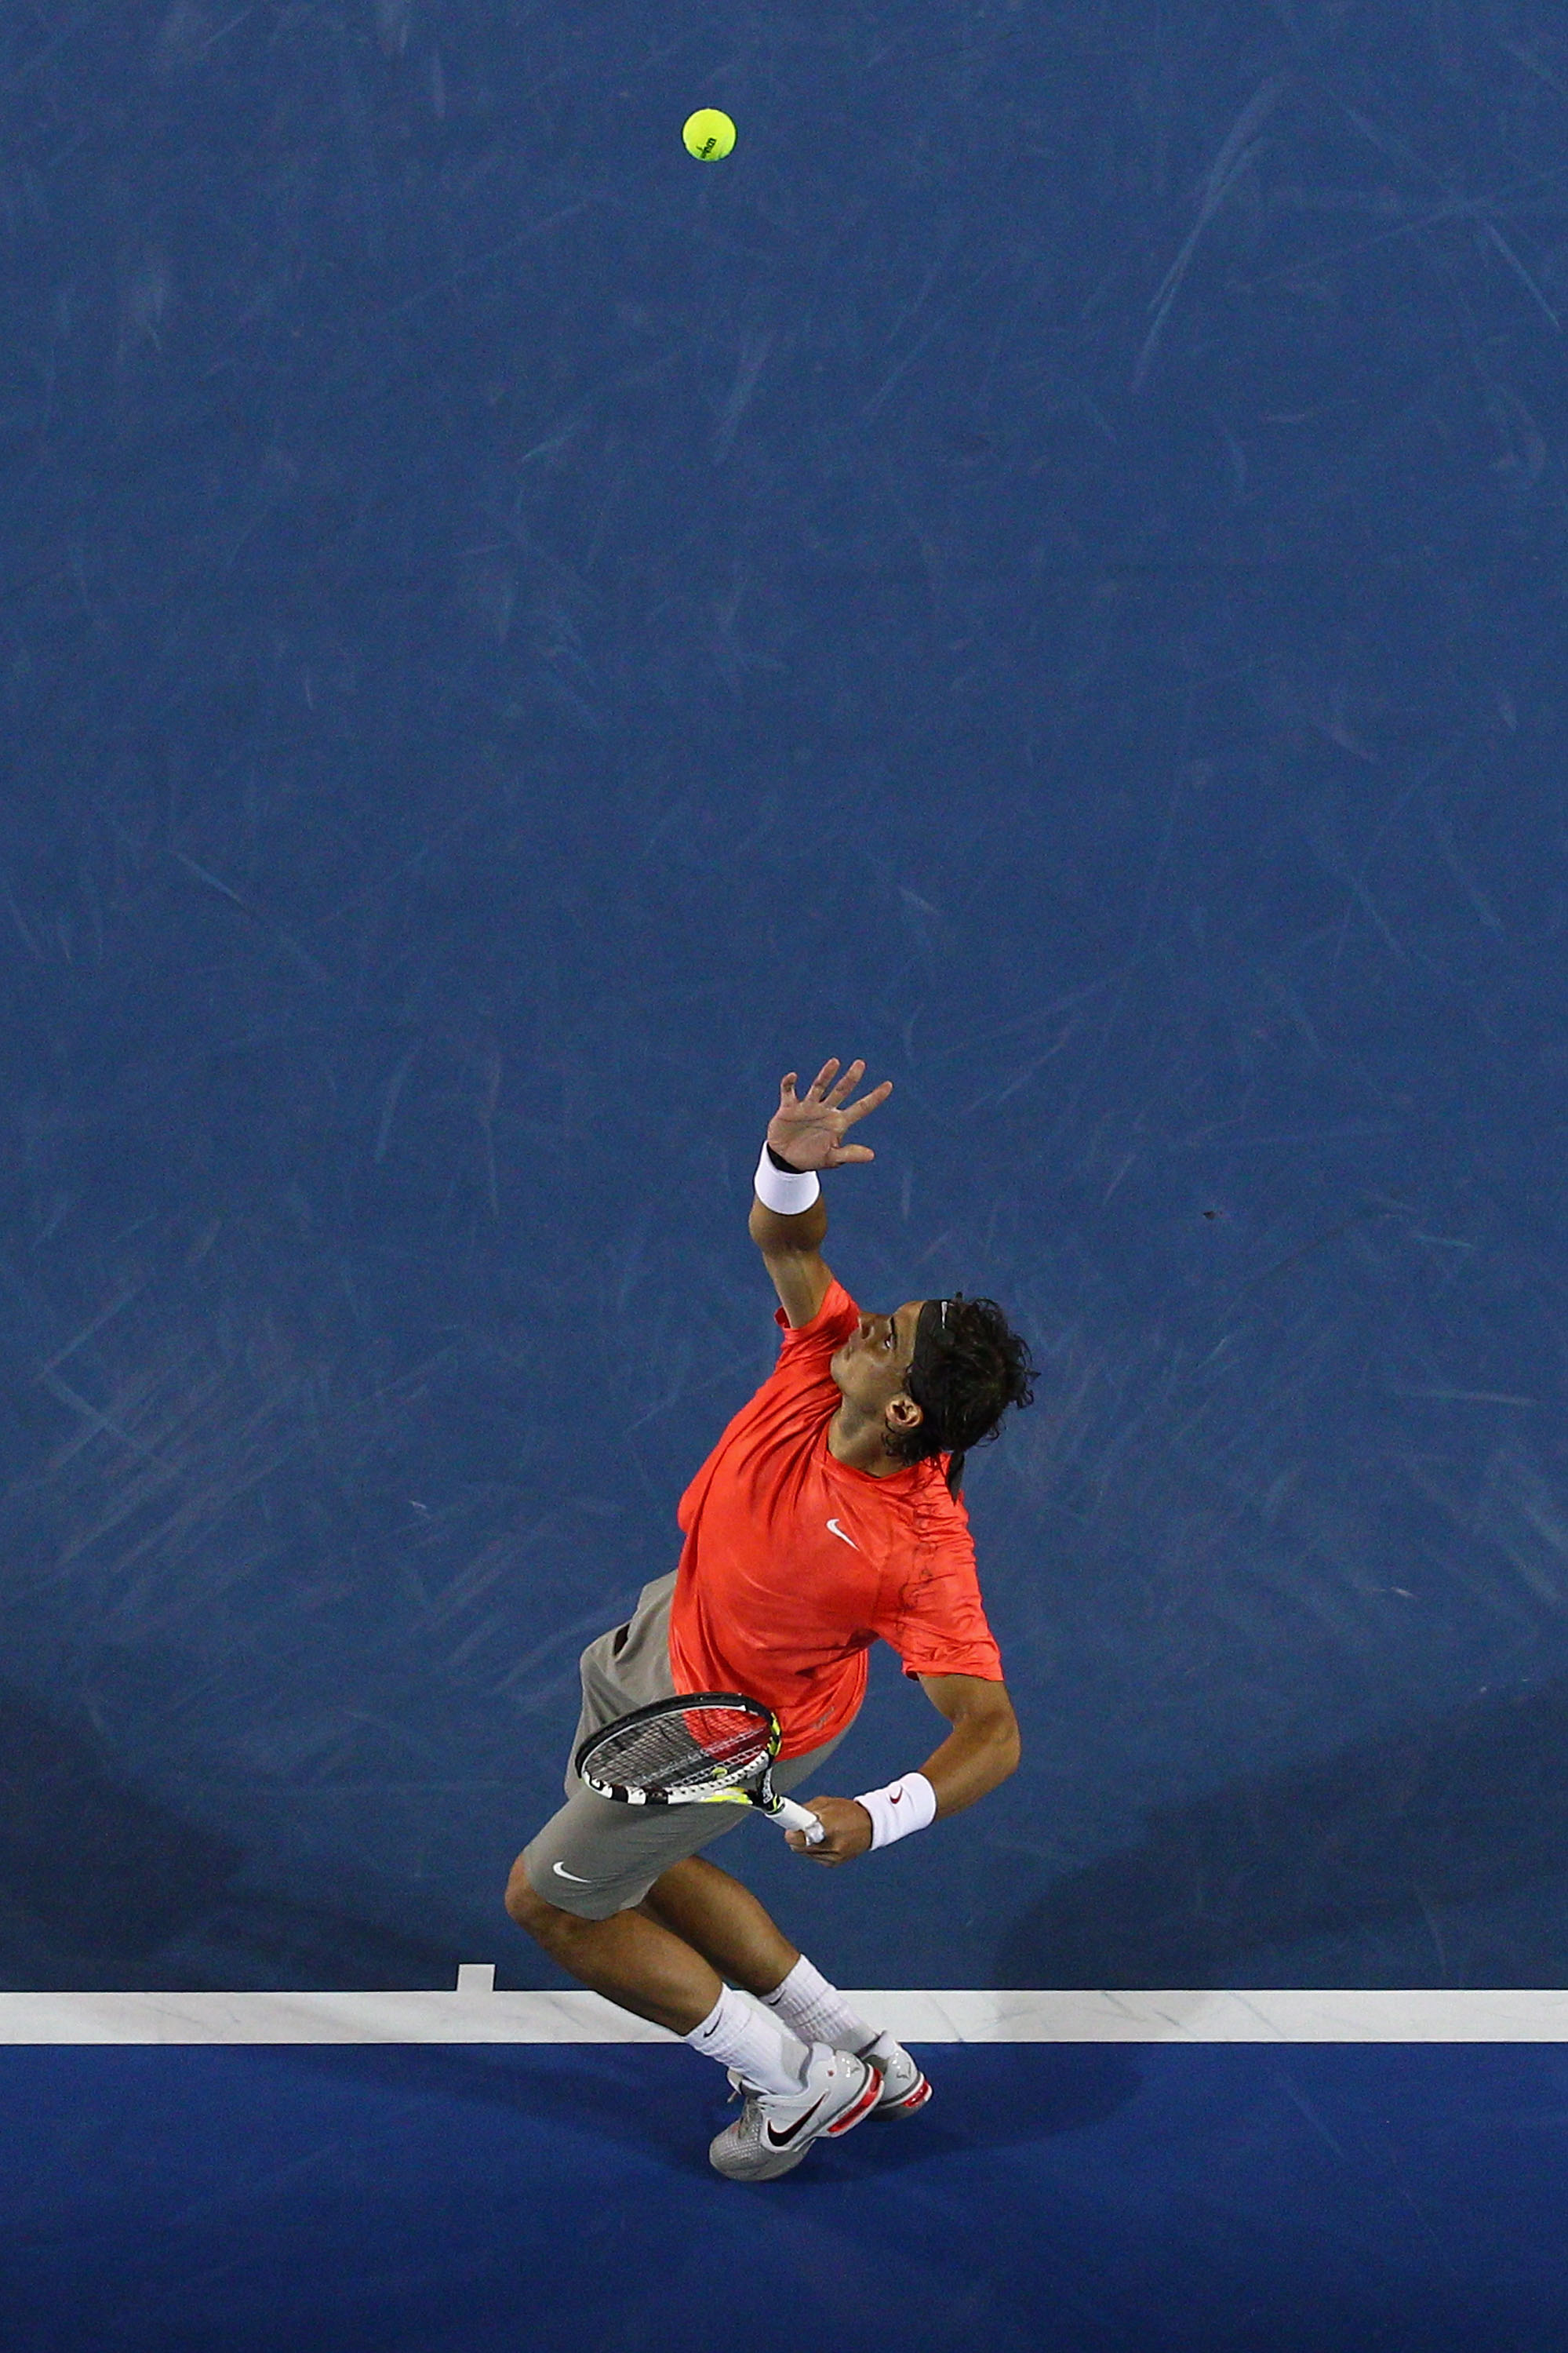 Nadal's serve was key to winning his first US Open title.